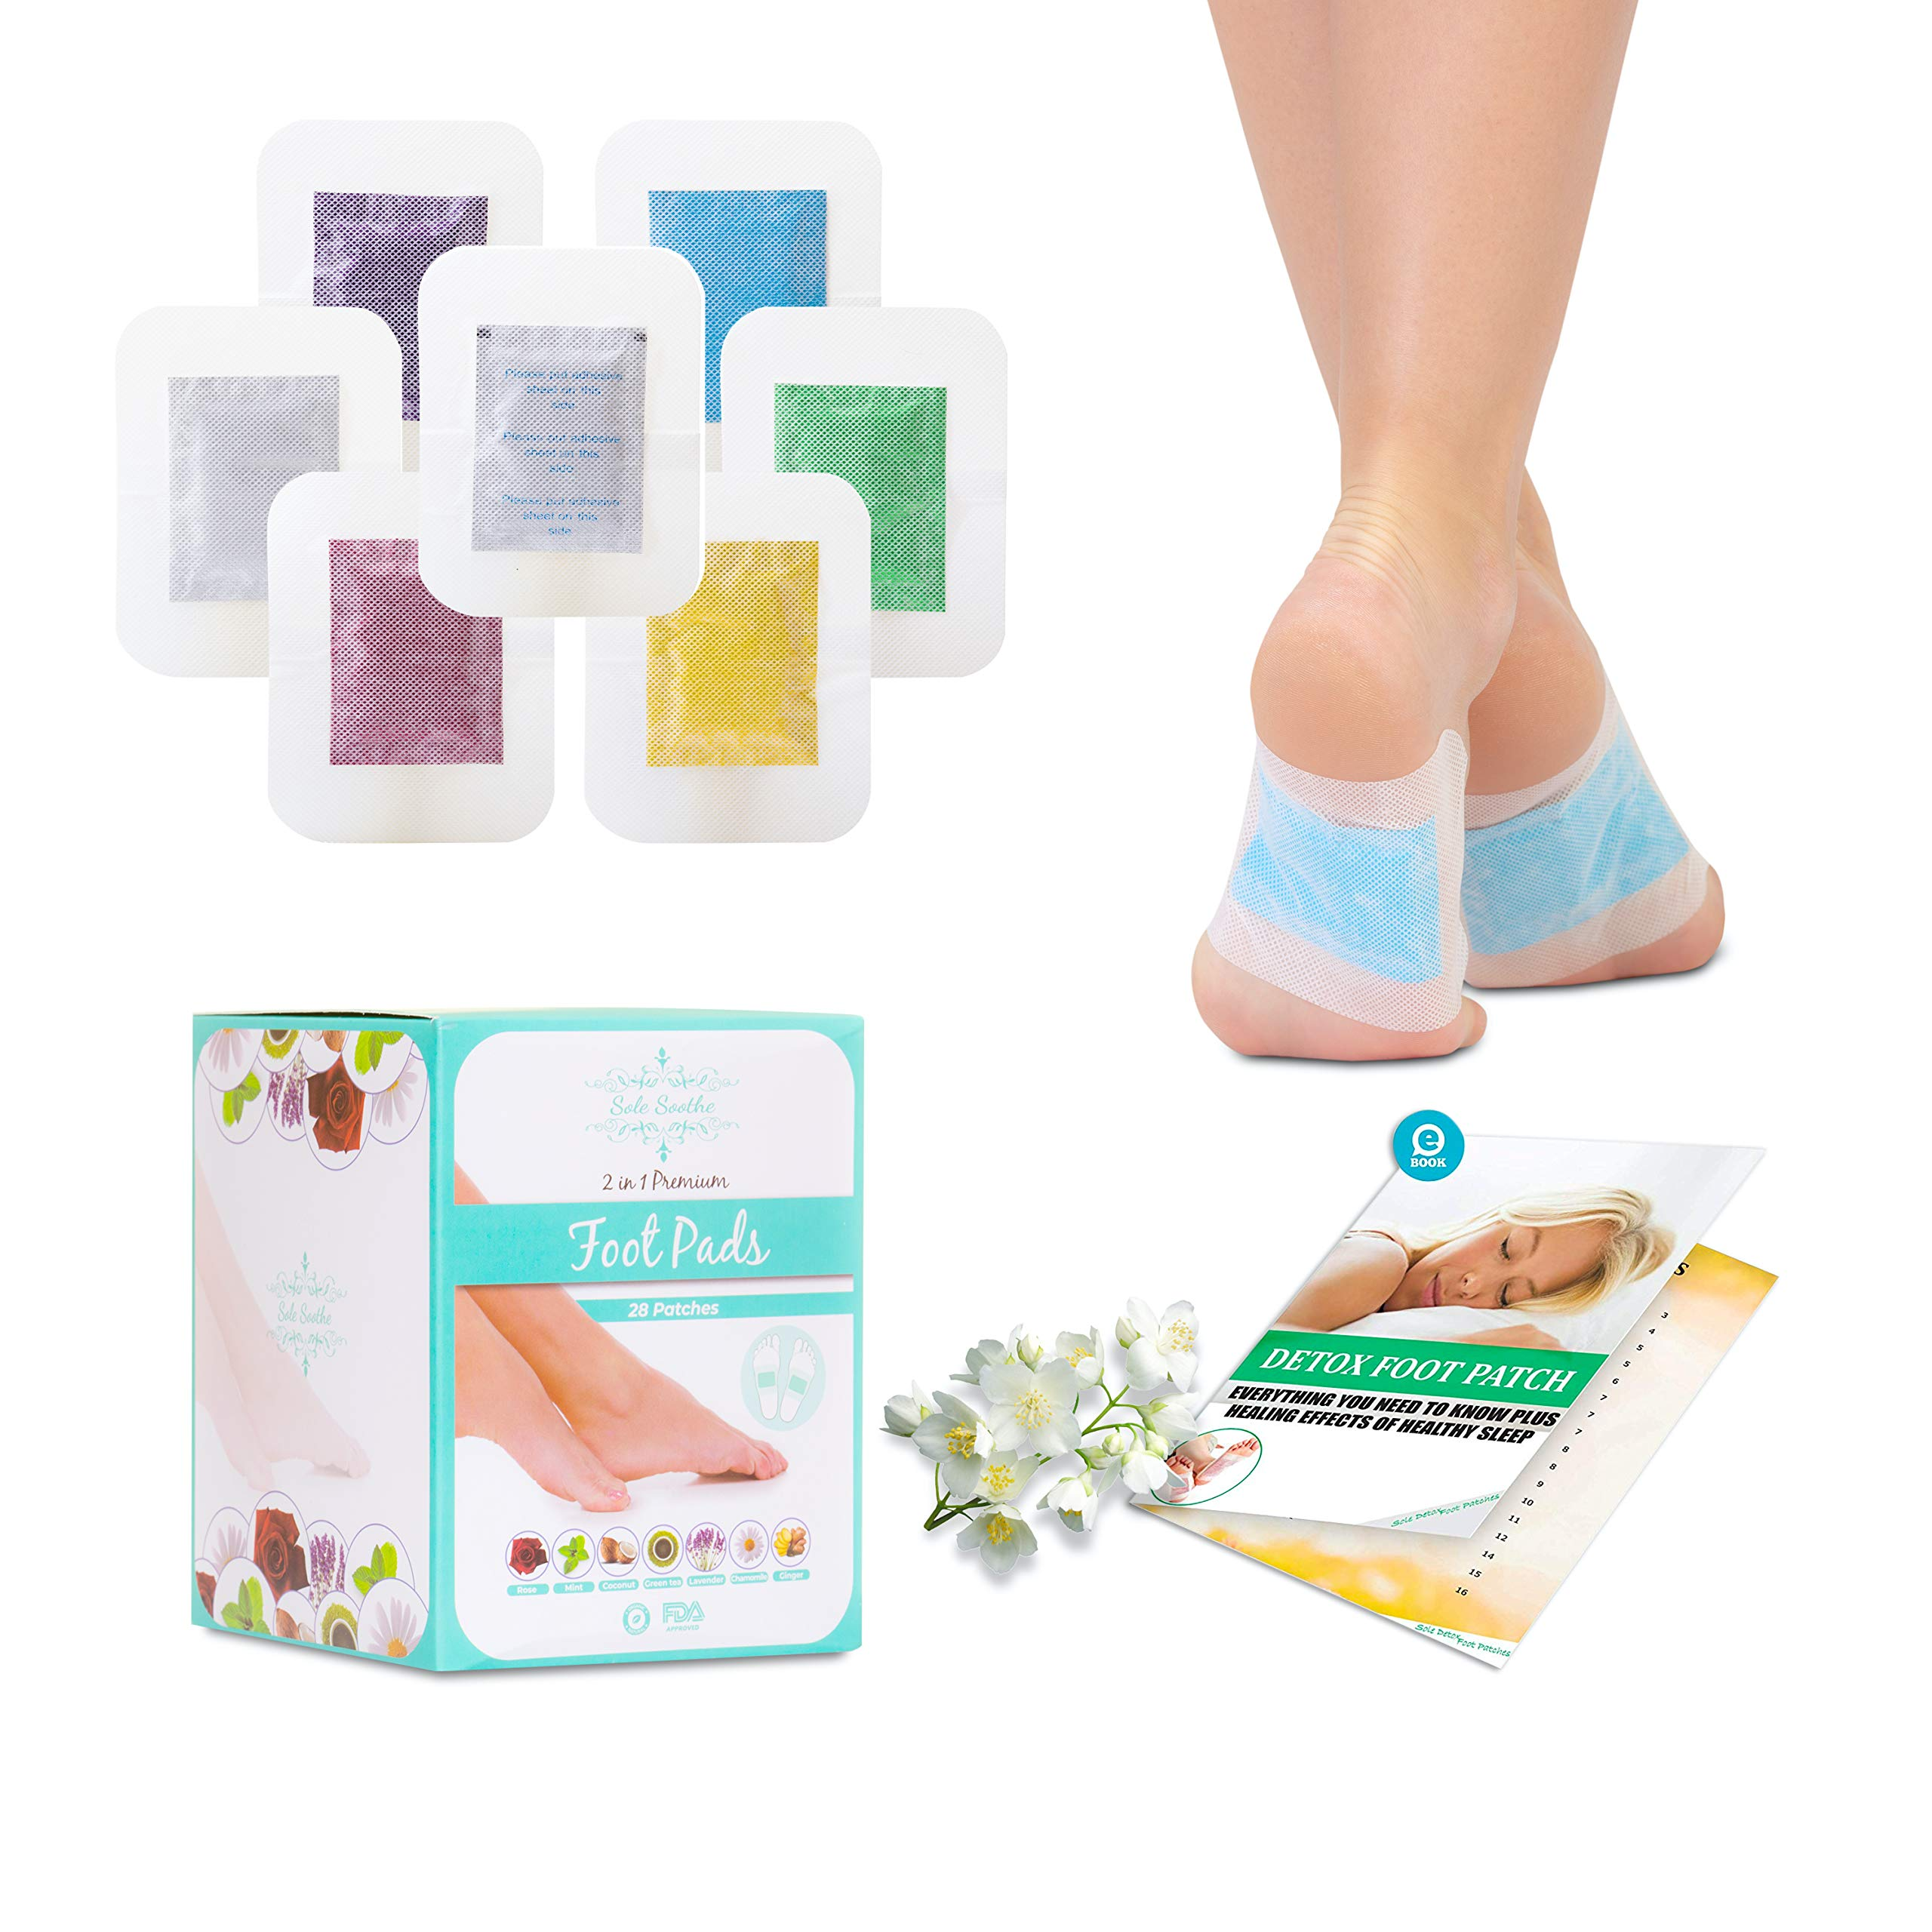 Sole Soothe Foot Pads